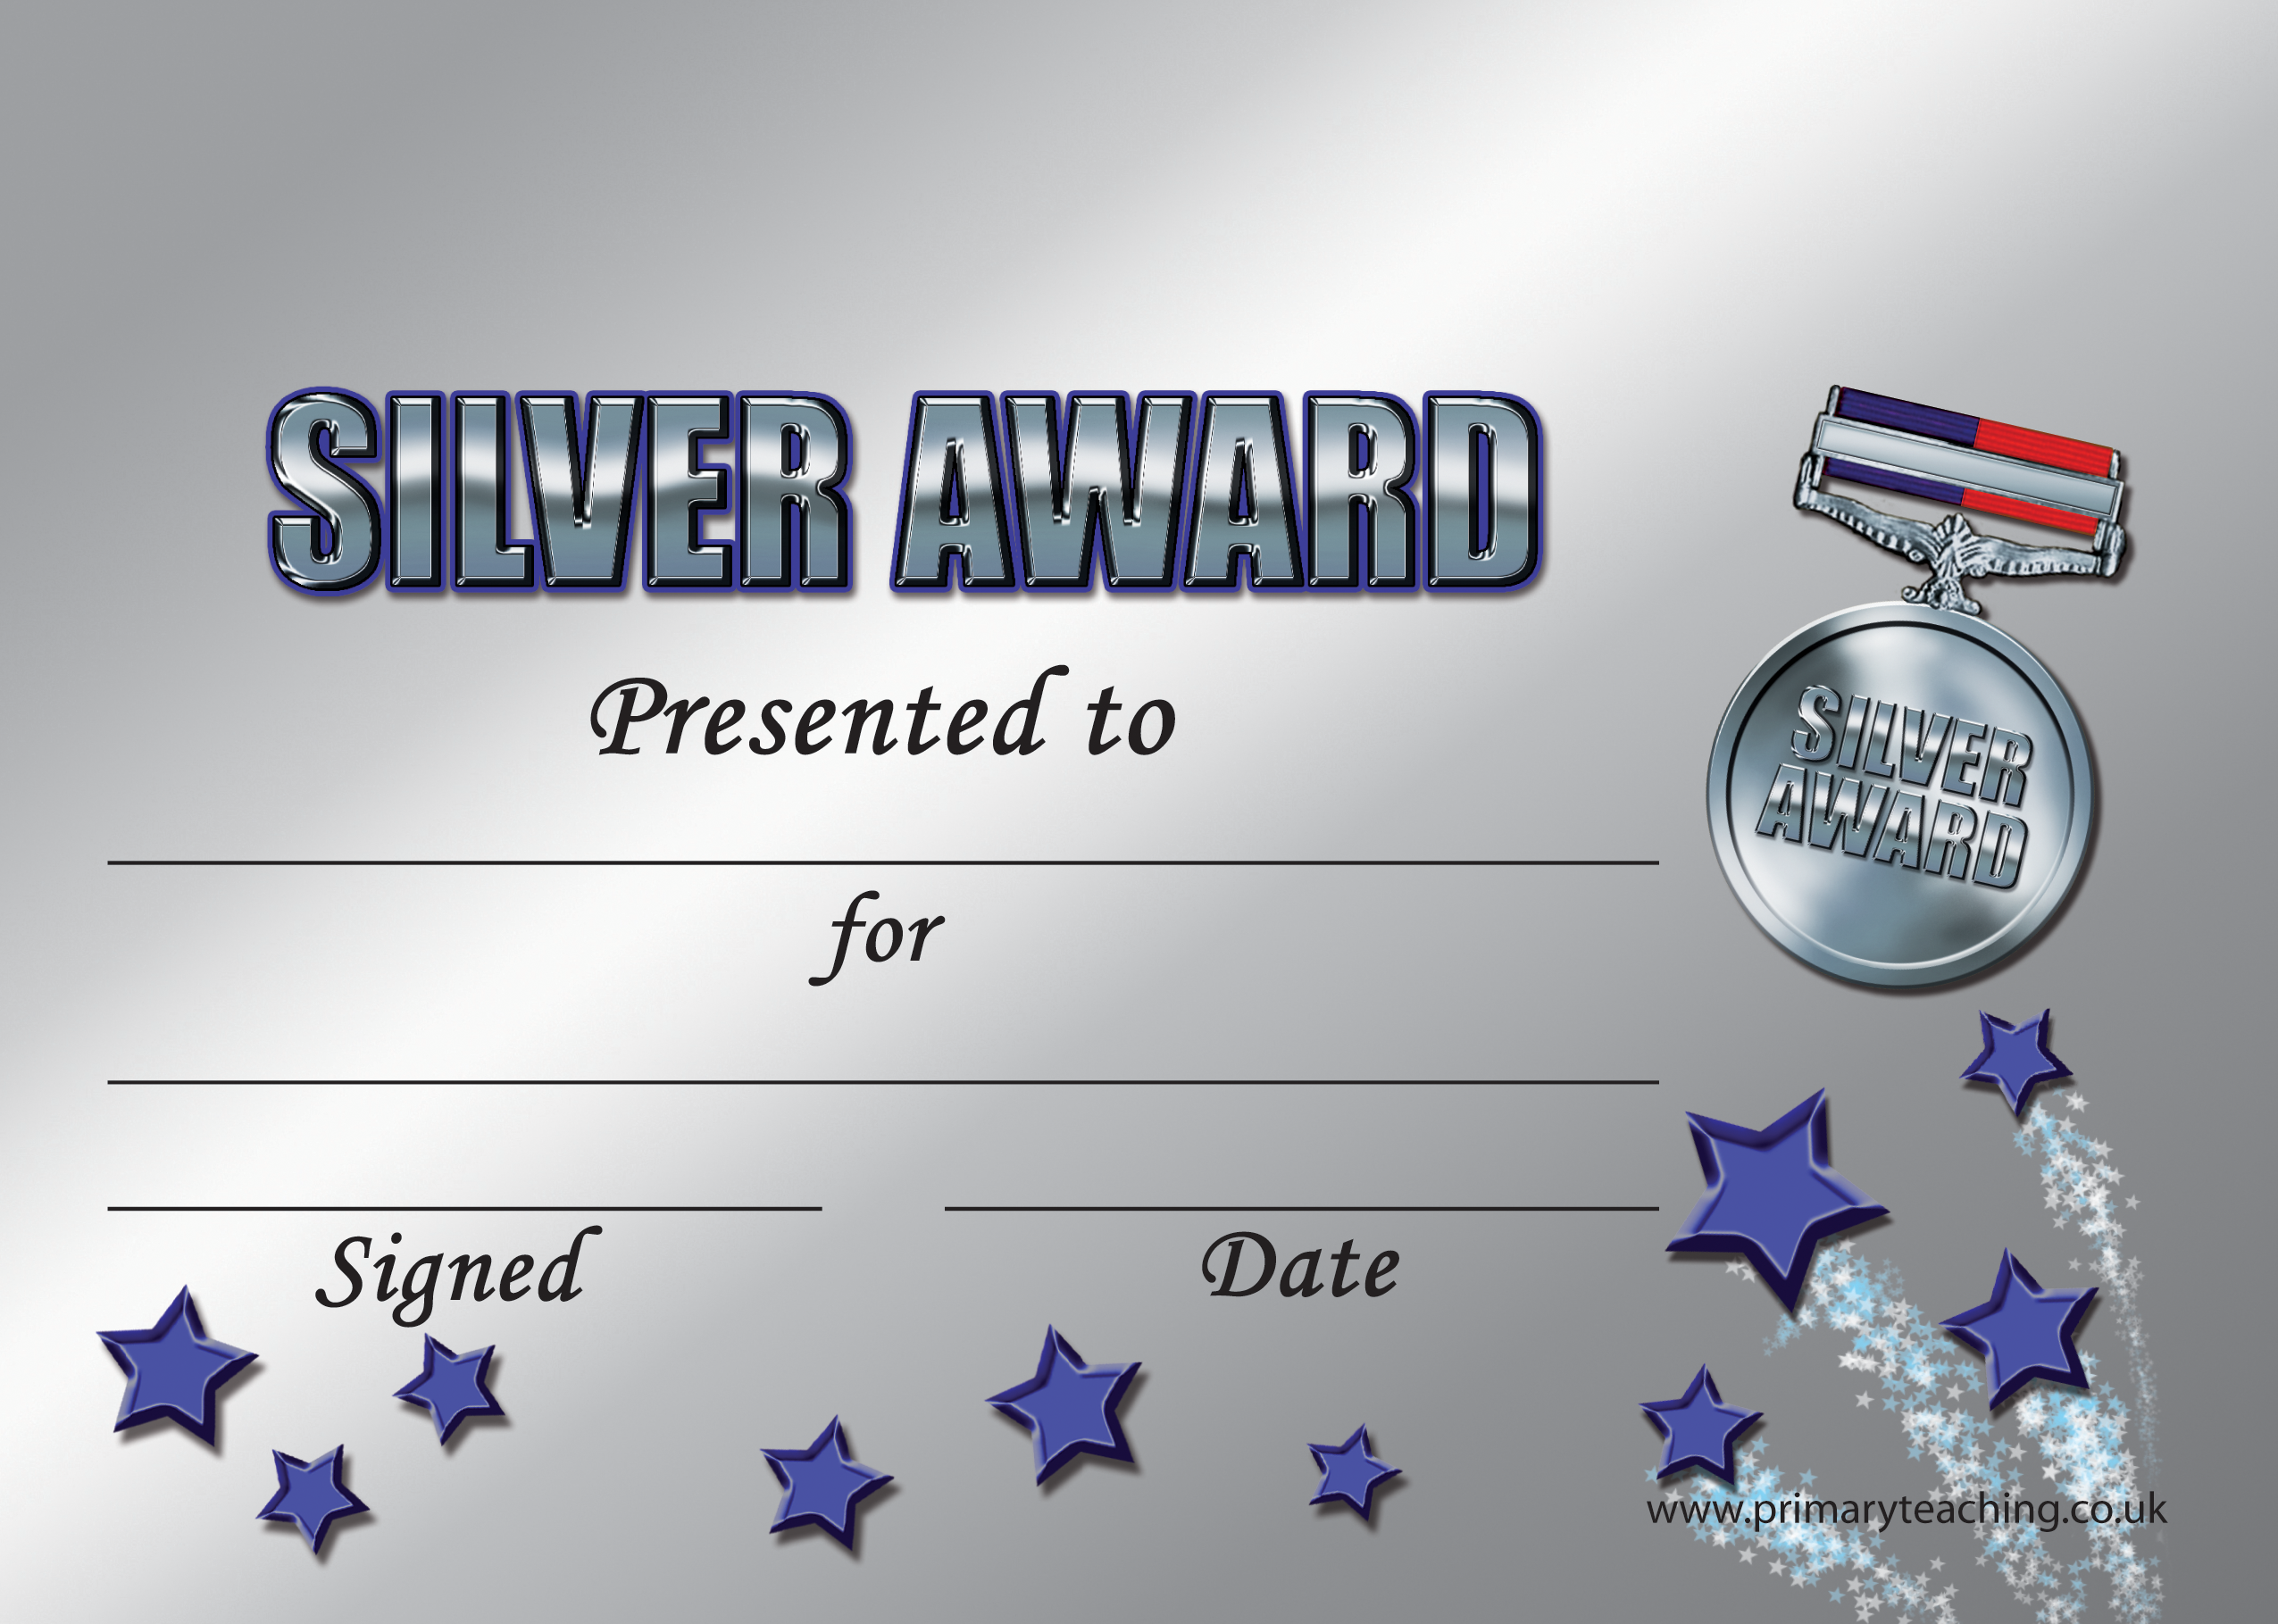 A5 personalised certificates with a silver award design a5 personalised silver award certificate s5c8 xflitez Choice Image